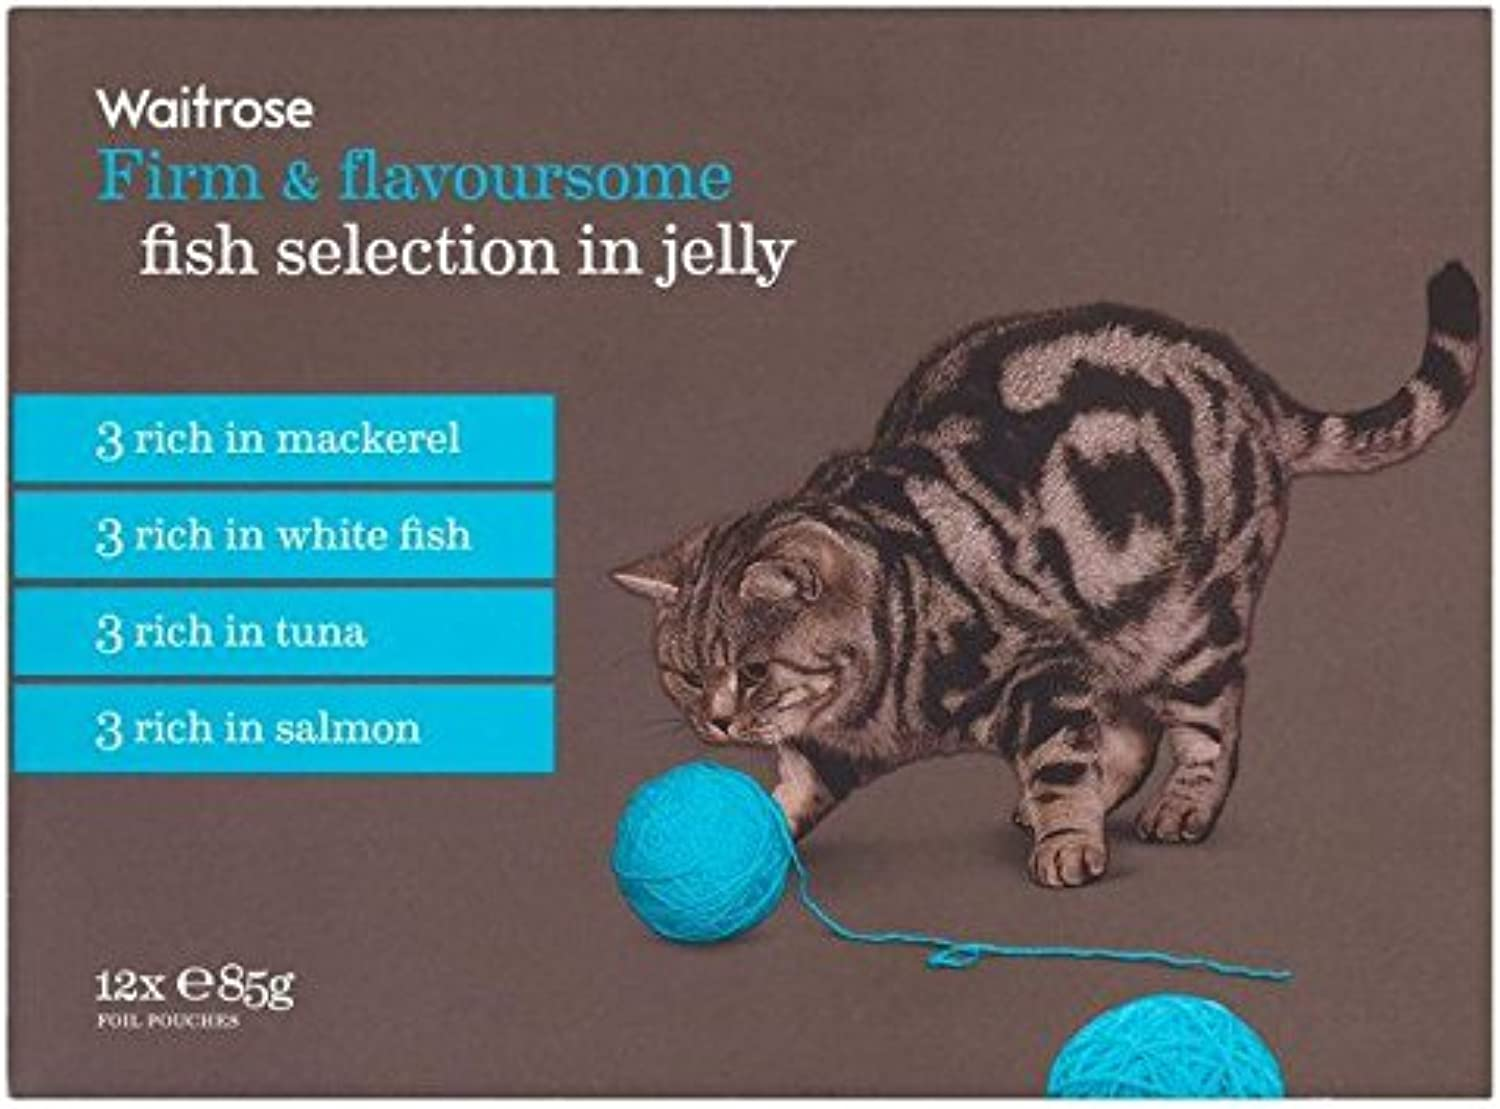 Cat Adult Pouch Fish Selection Waitpink 12 x 85g (PACK OF 2)